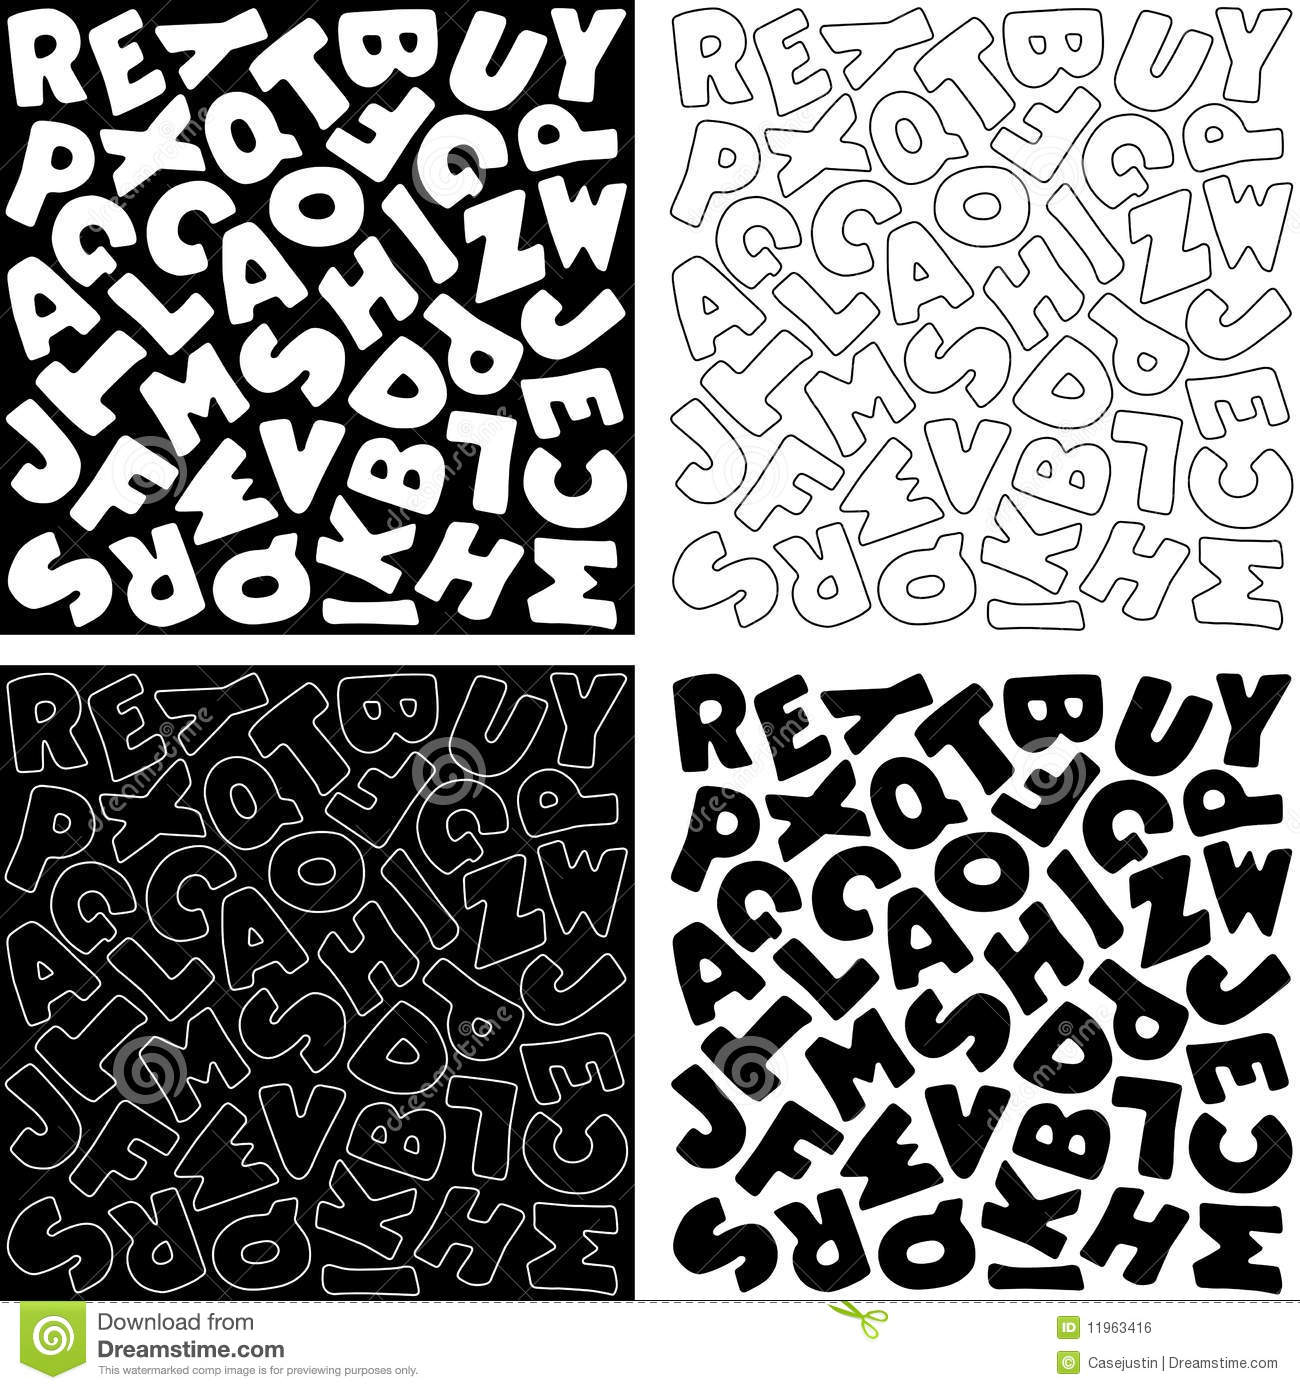 Alphabet Designs In Black And White Royalty Free Stock